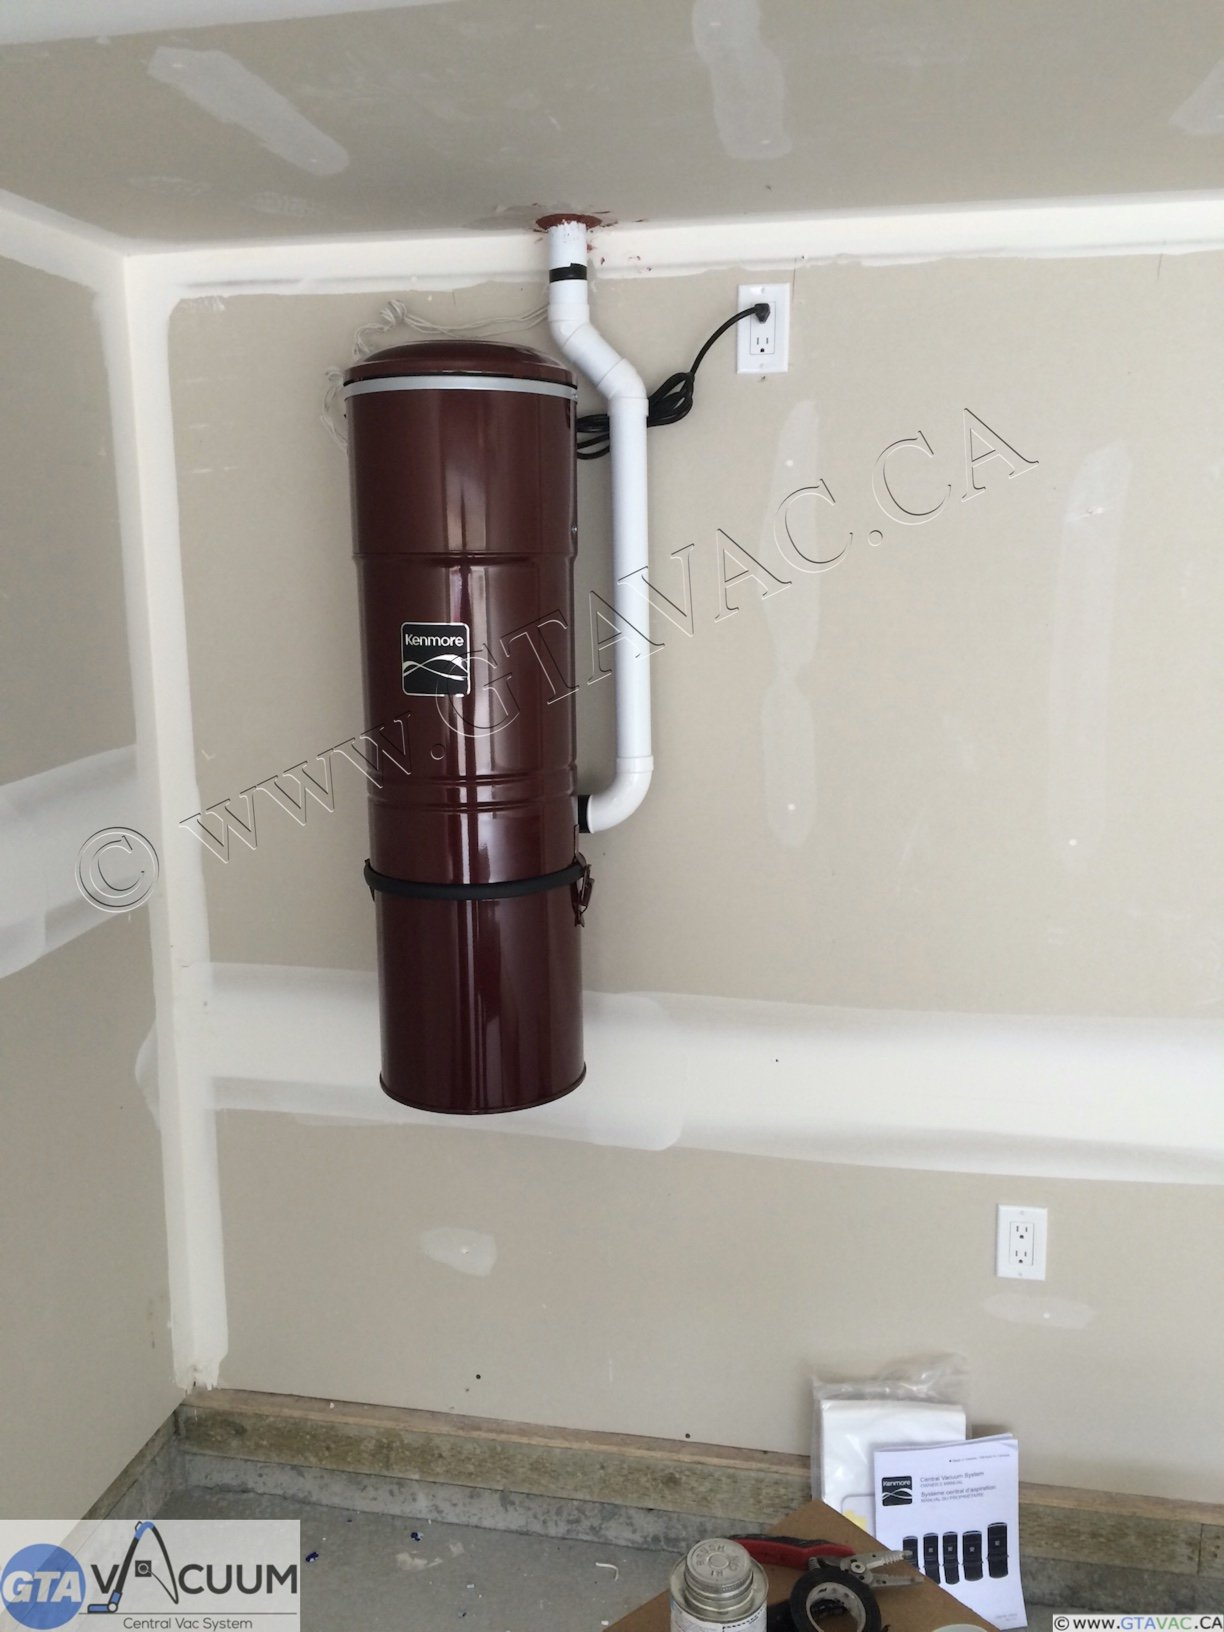 Kenmore Central Vacuum GTA Vacuum Recent Project Gallery 1